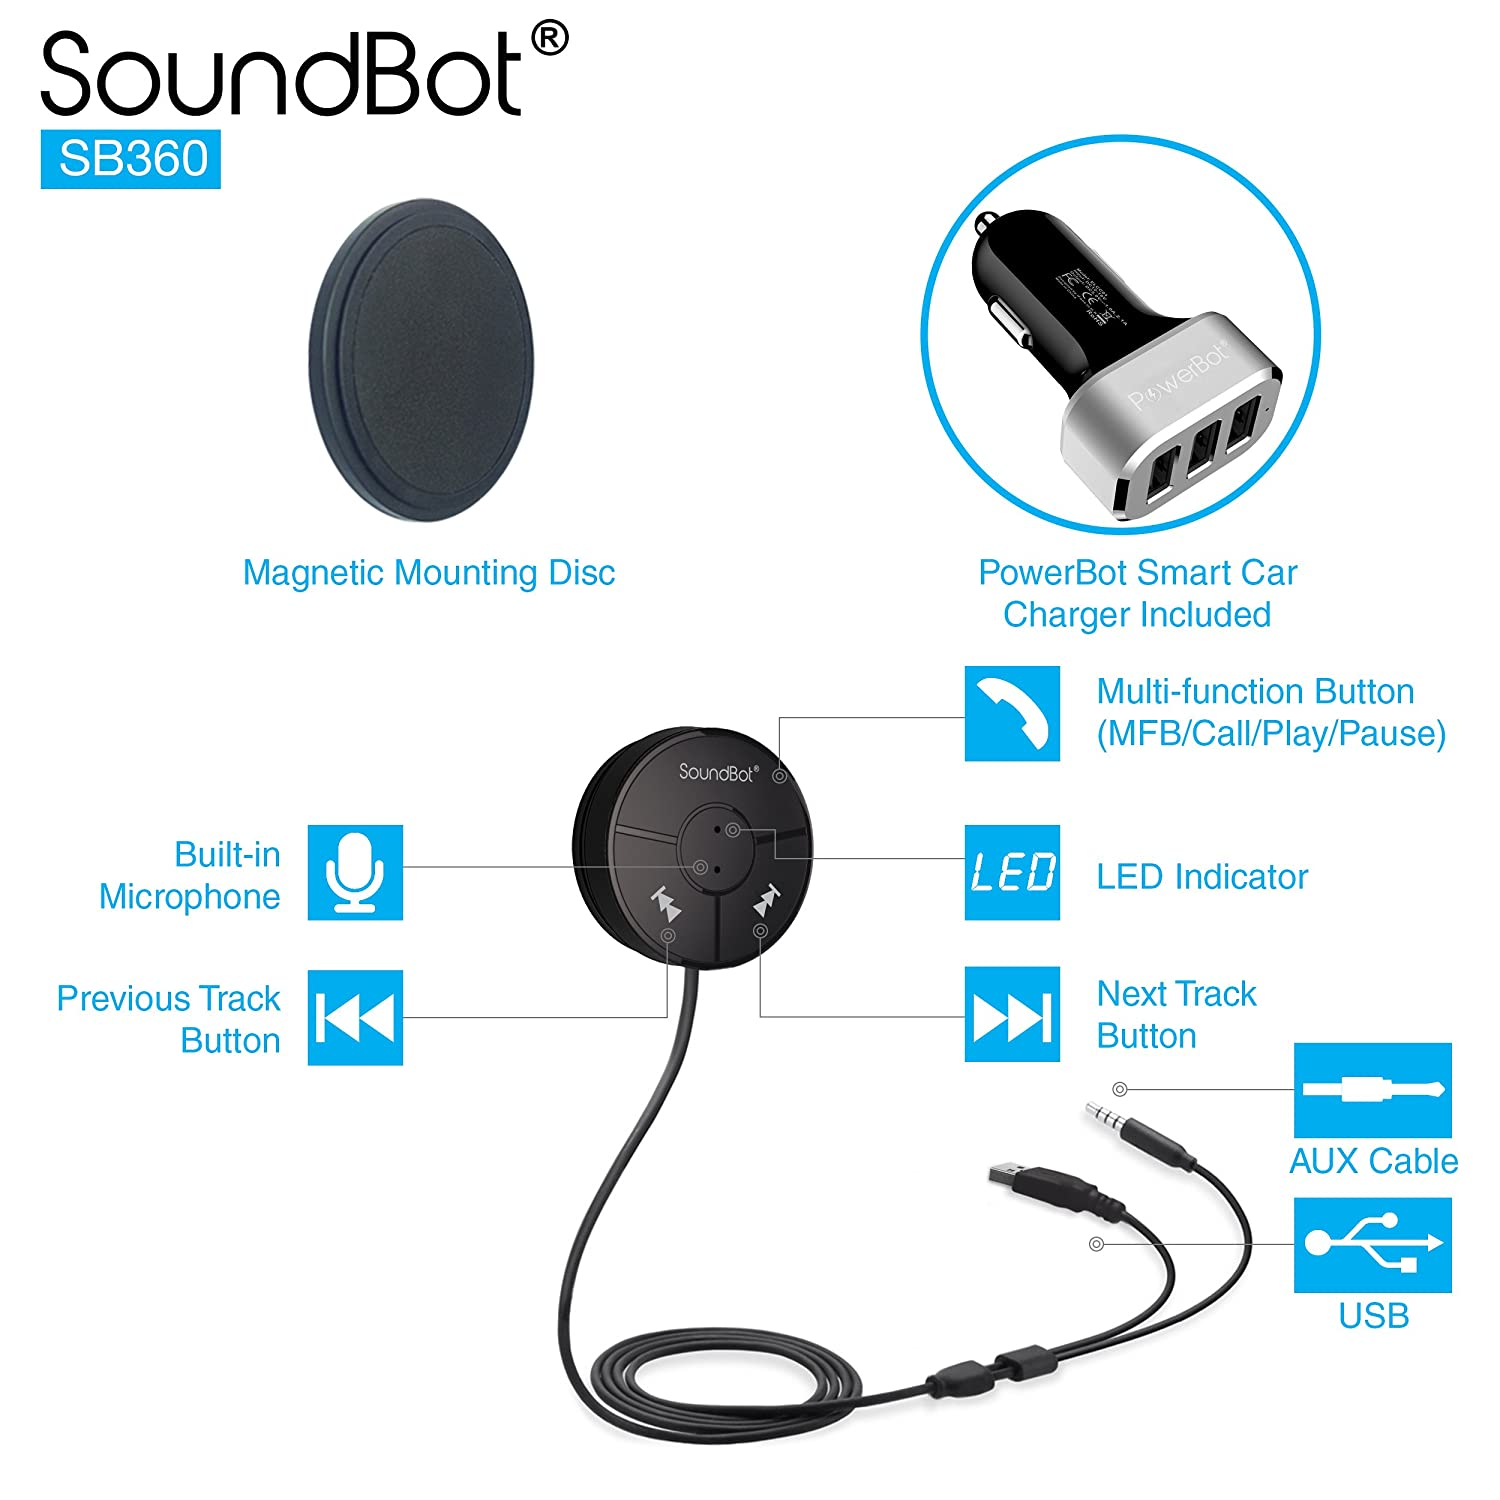 SoundBot SB360 Bluetooth 4.0 Car Kit Hands-Free Wireless Talking /& Music Streaming Dongle w// 10W Dual Port 2.1A USB Charger Magnetic Mounts Built-in 3.5mm Aux Cable